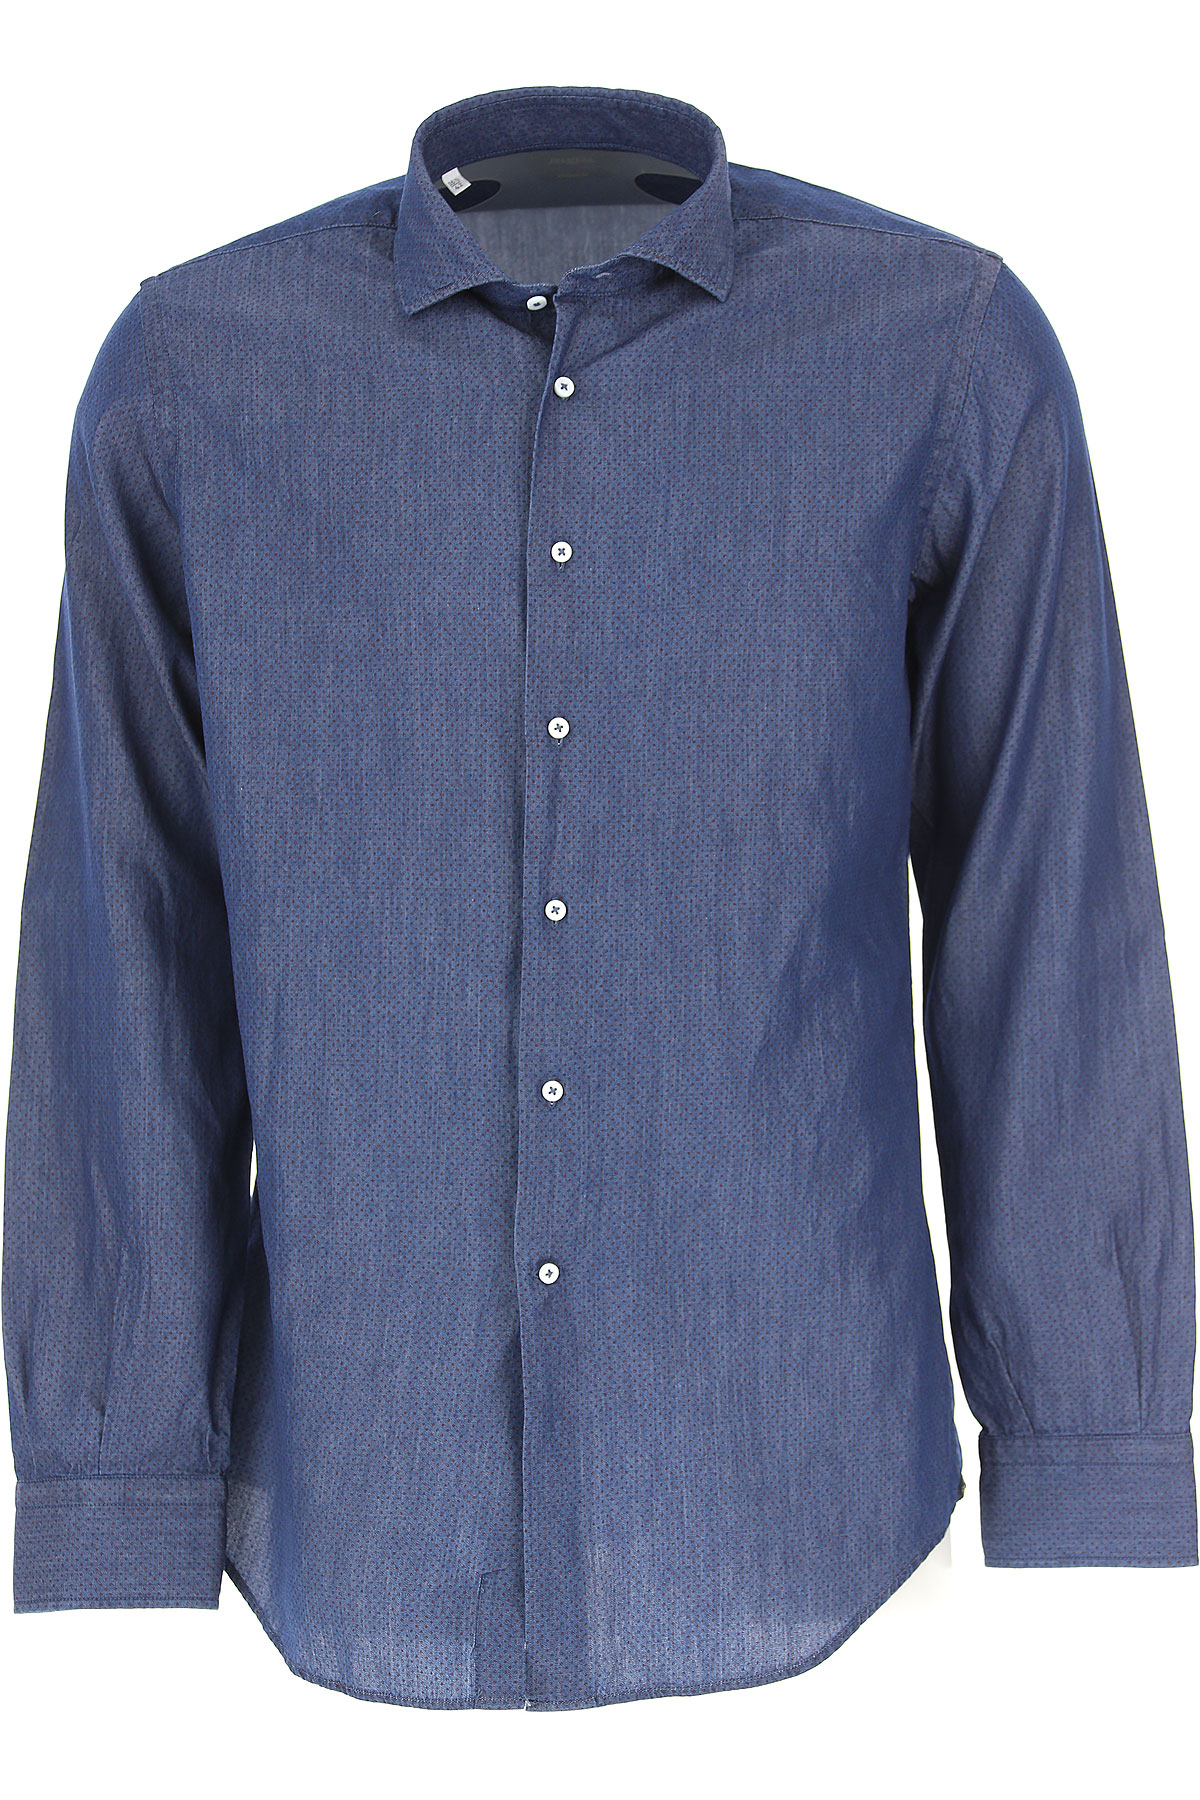 Image of Del Siena Shirt for Men, Blu Denim, Cotton, 2017, 15 15.5 15.75 16 16.5 17